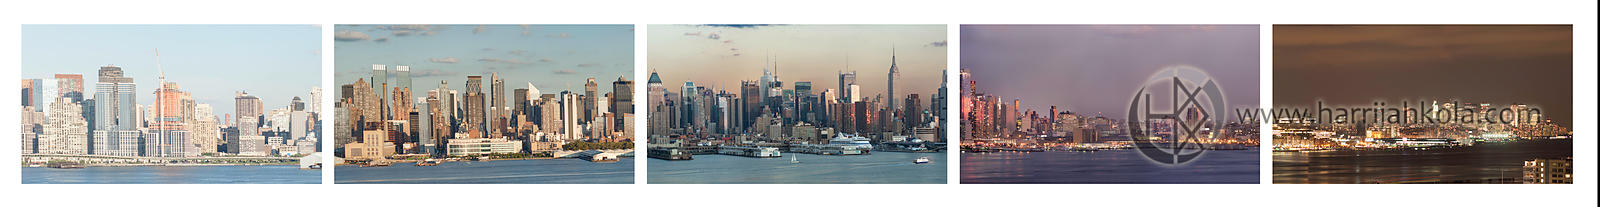 United States - New York (Manhattan Time Lapse in A Frame)